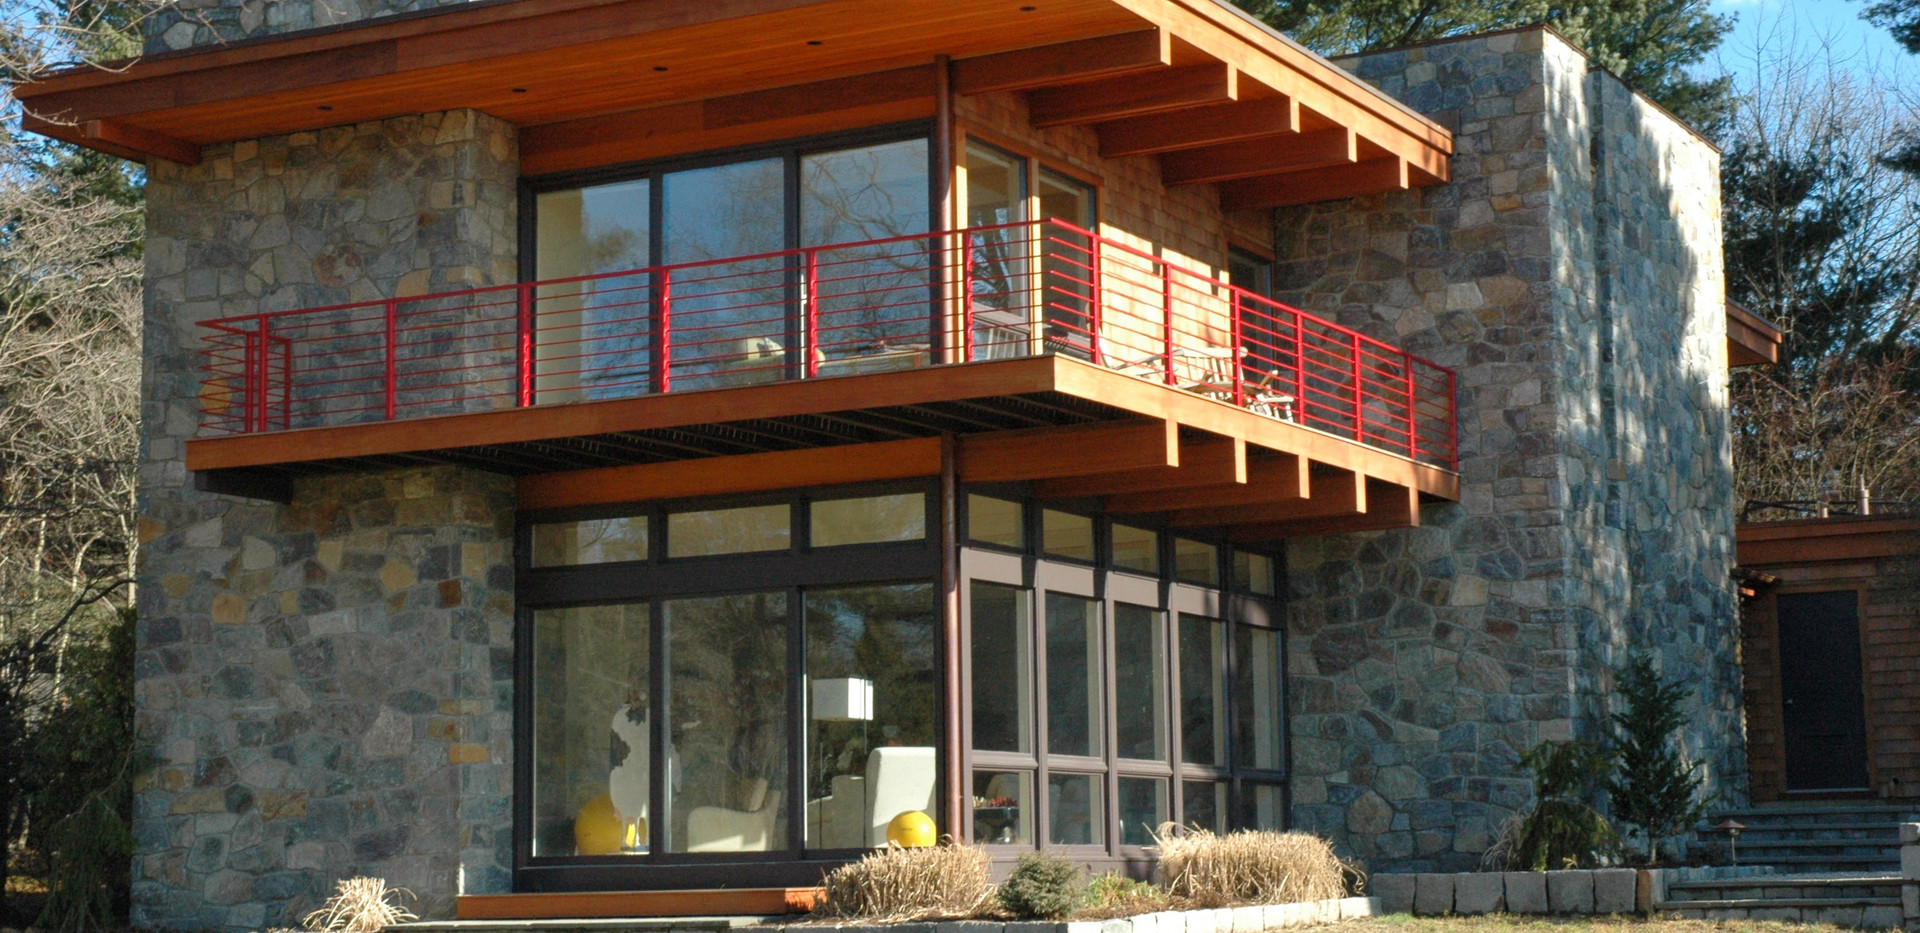 New Mahogany clad Facia, Soffit, Beams and roof overhang.  Spruce Mountain Stone Veneer.